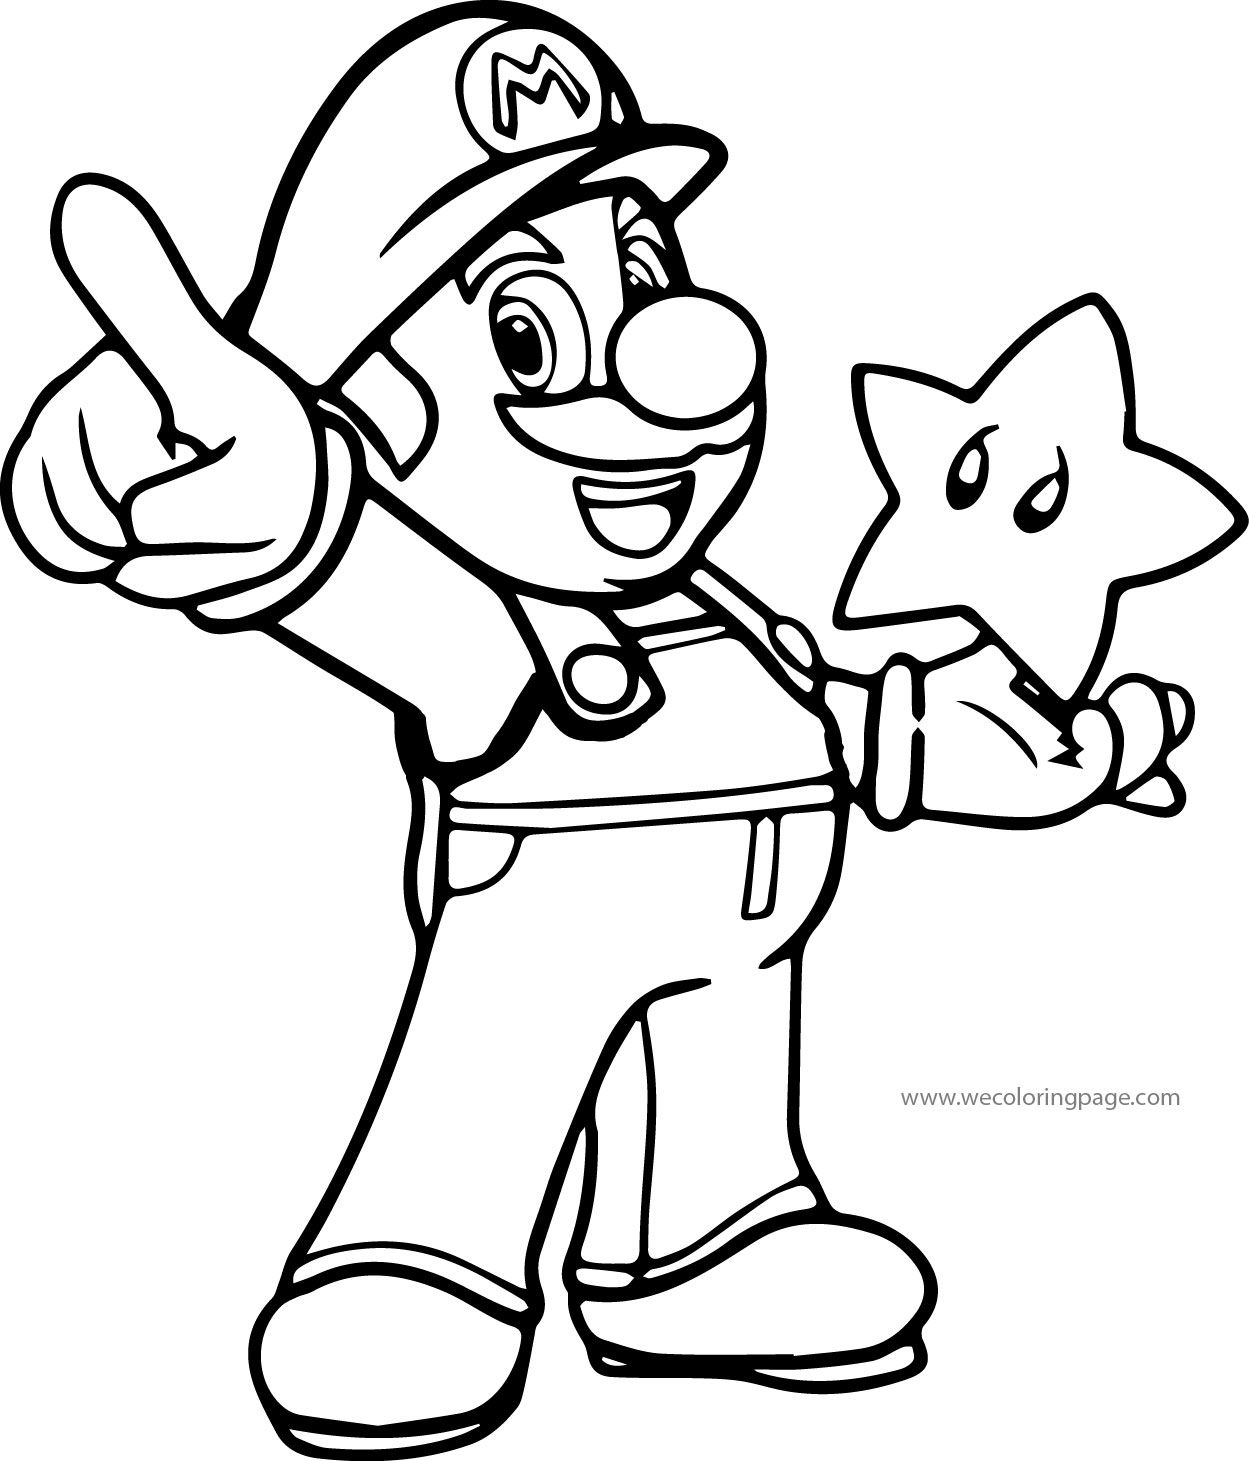 Super Mario Coloring Page | Pinterest | Birthdays, Coloring books ...